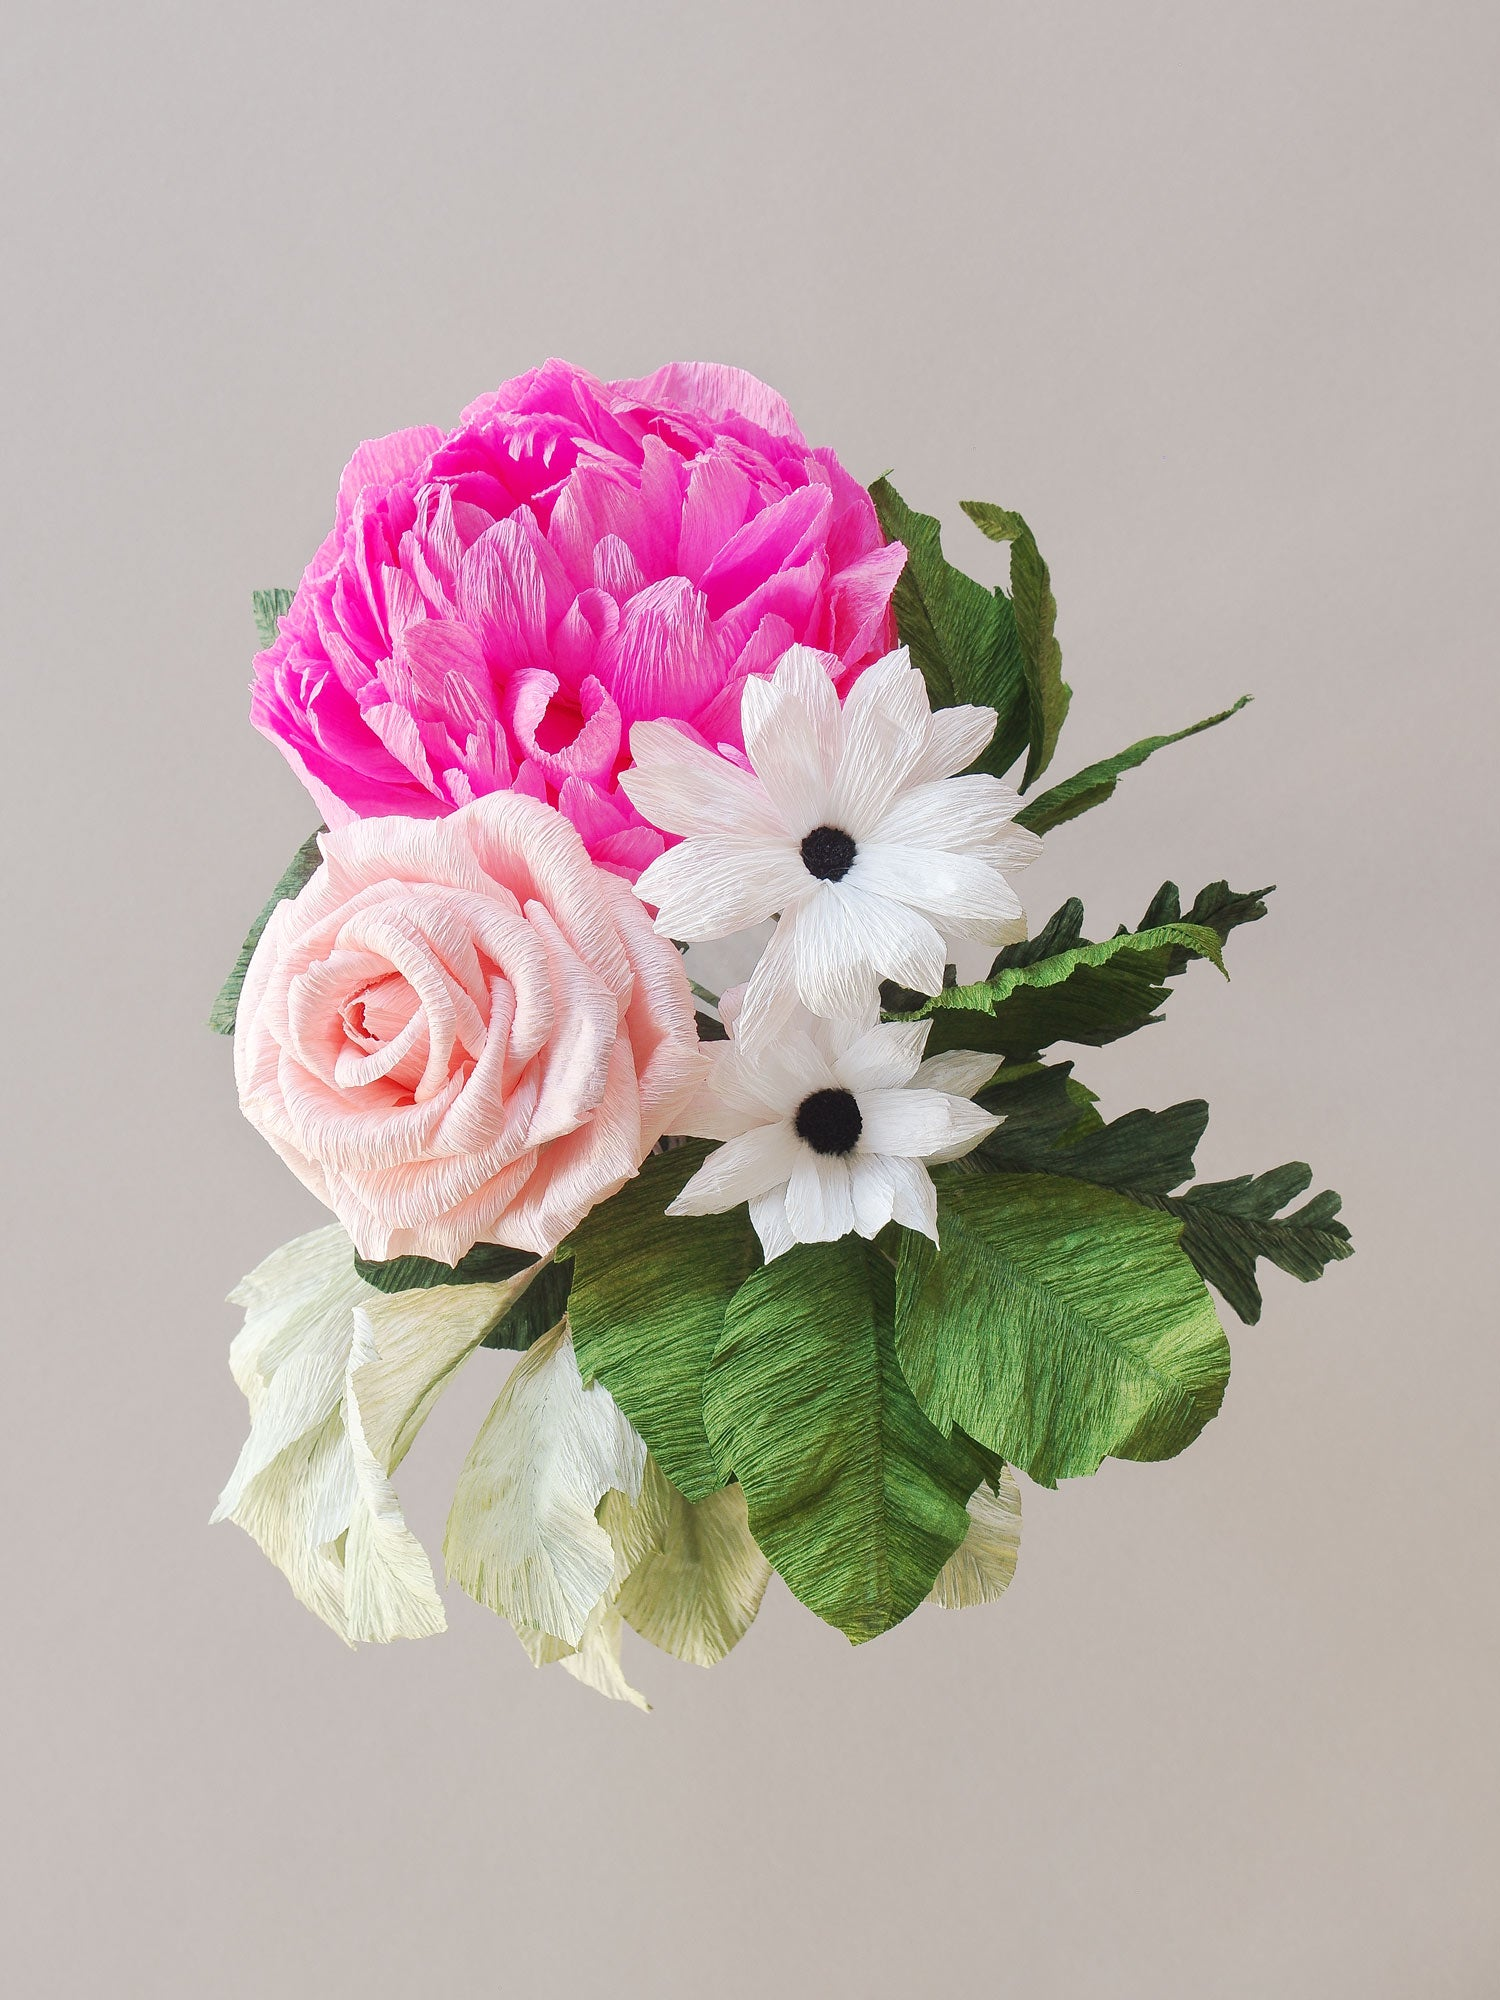 _<h1>Small & Mighty</h1><p>Pink peony, white daisy, and peach rose with a touch of greenery.</p>